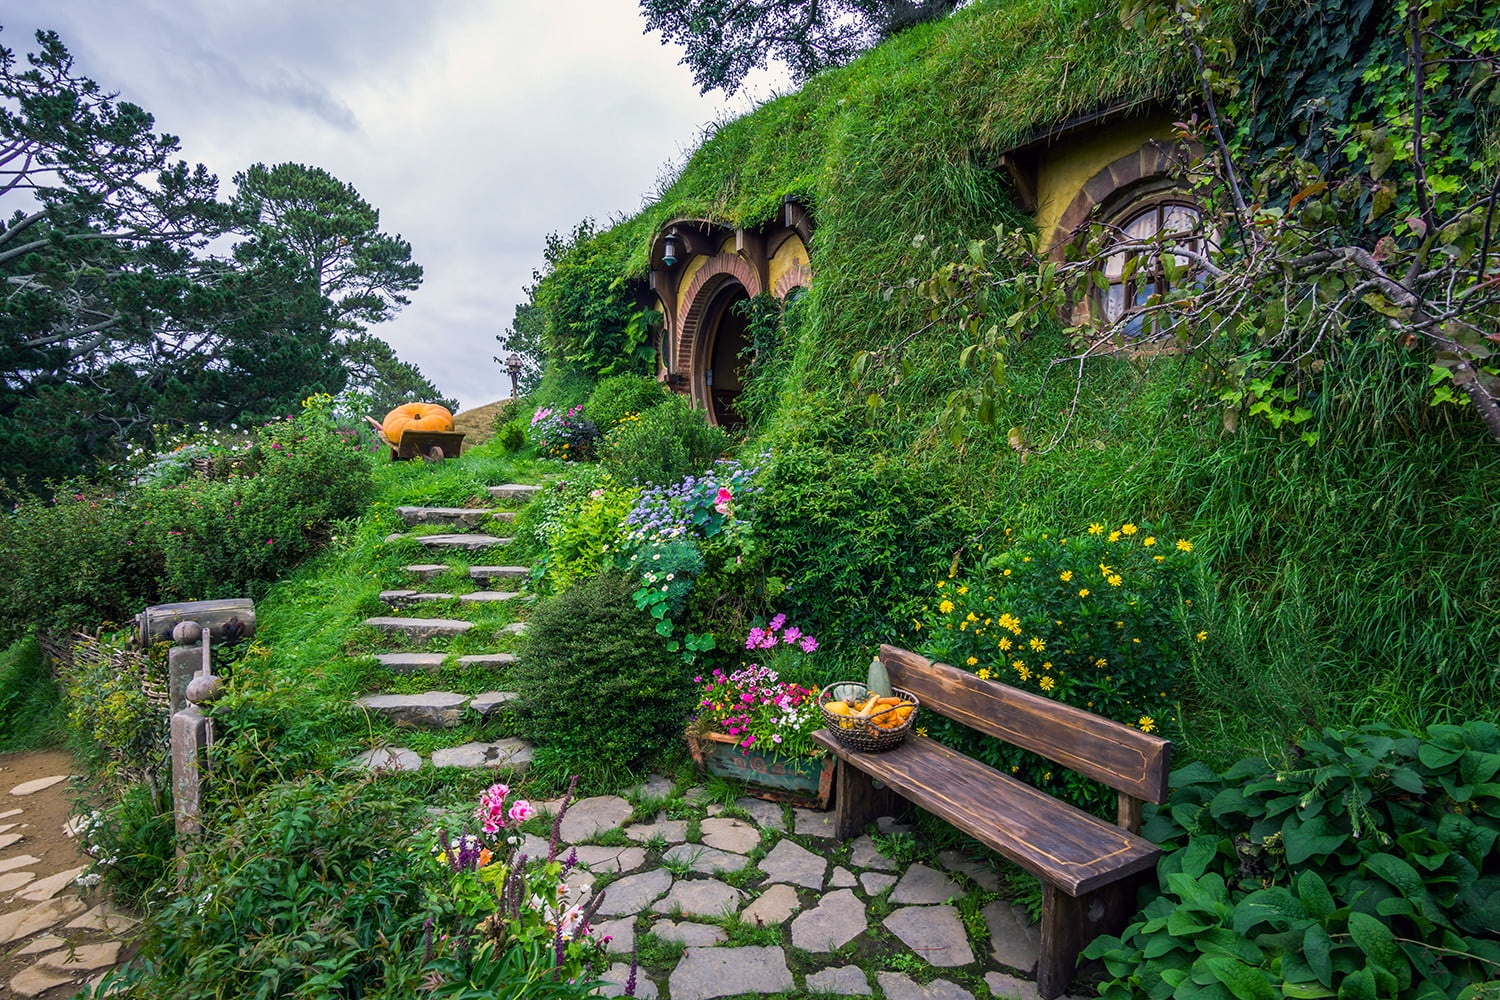 10 famous movie locations you can actually visit lord of the rings new zealand 5